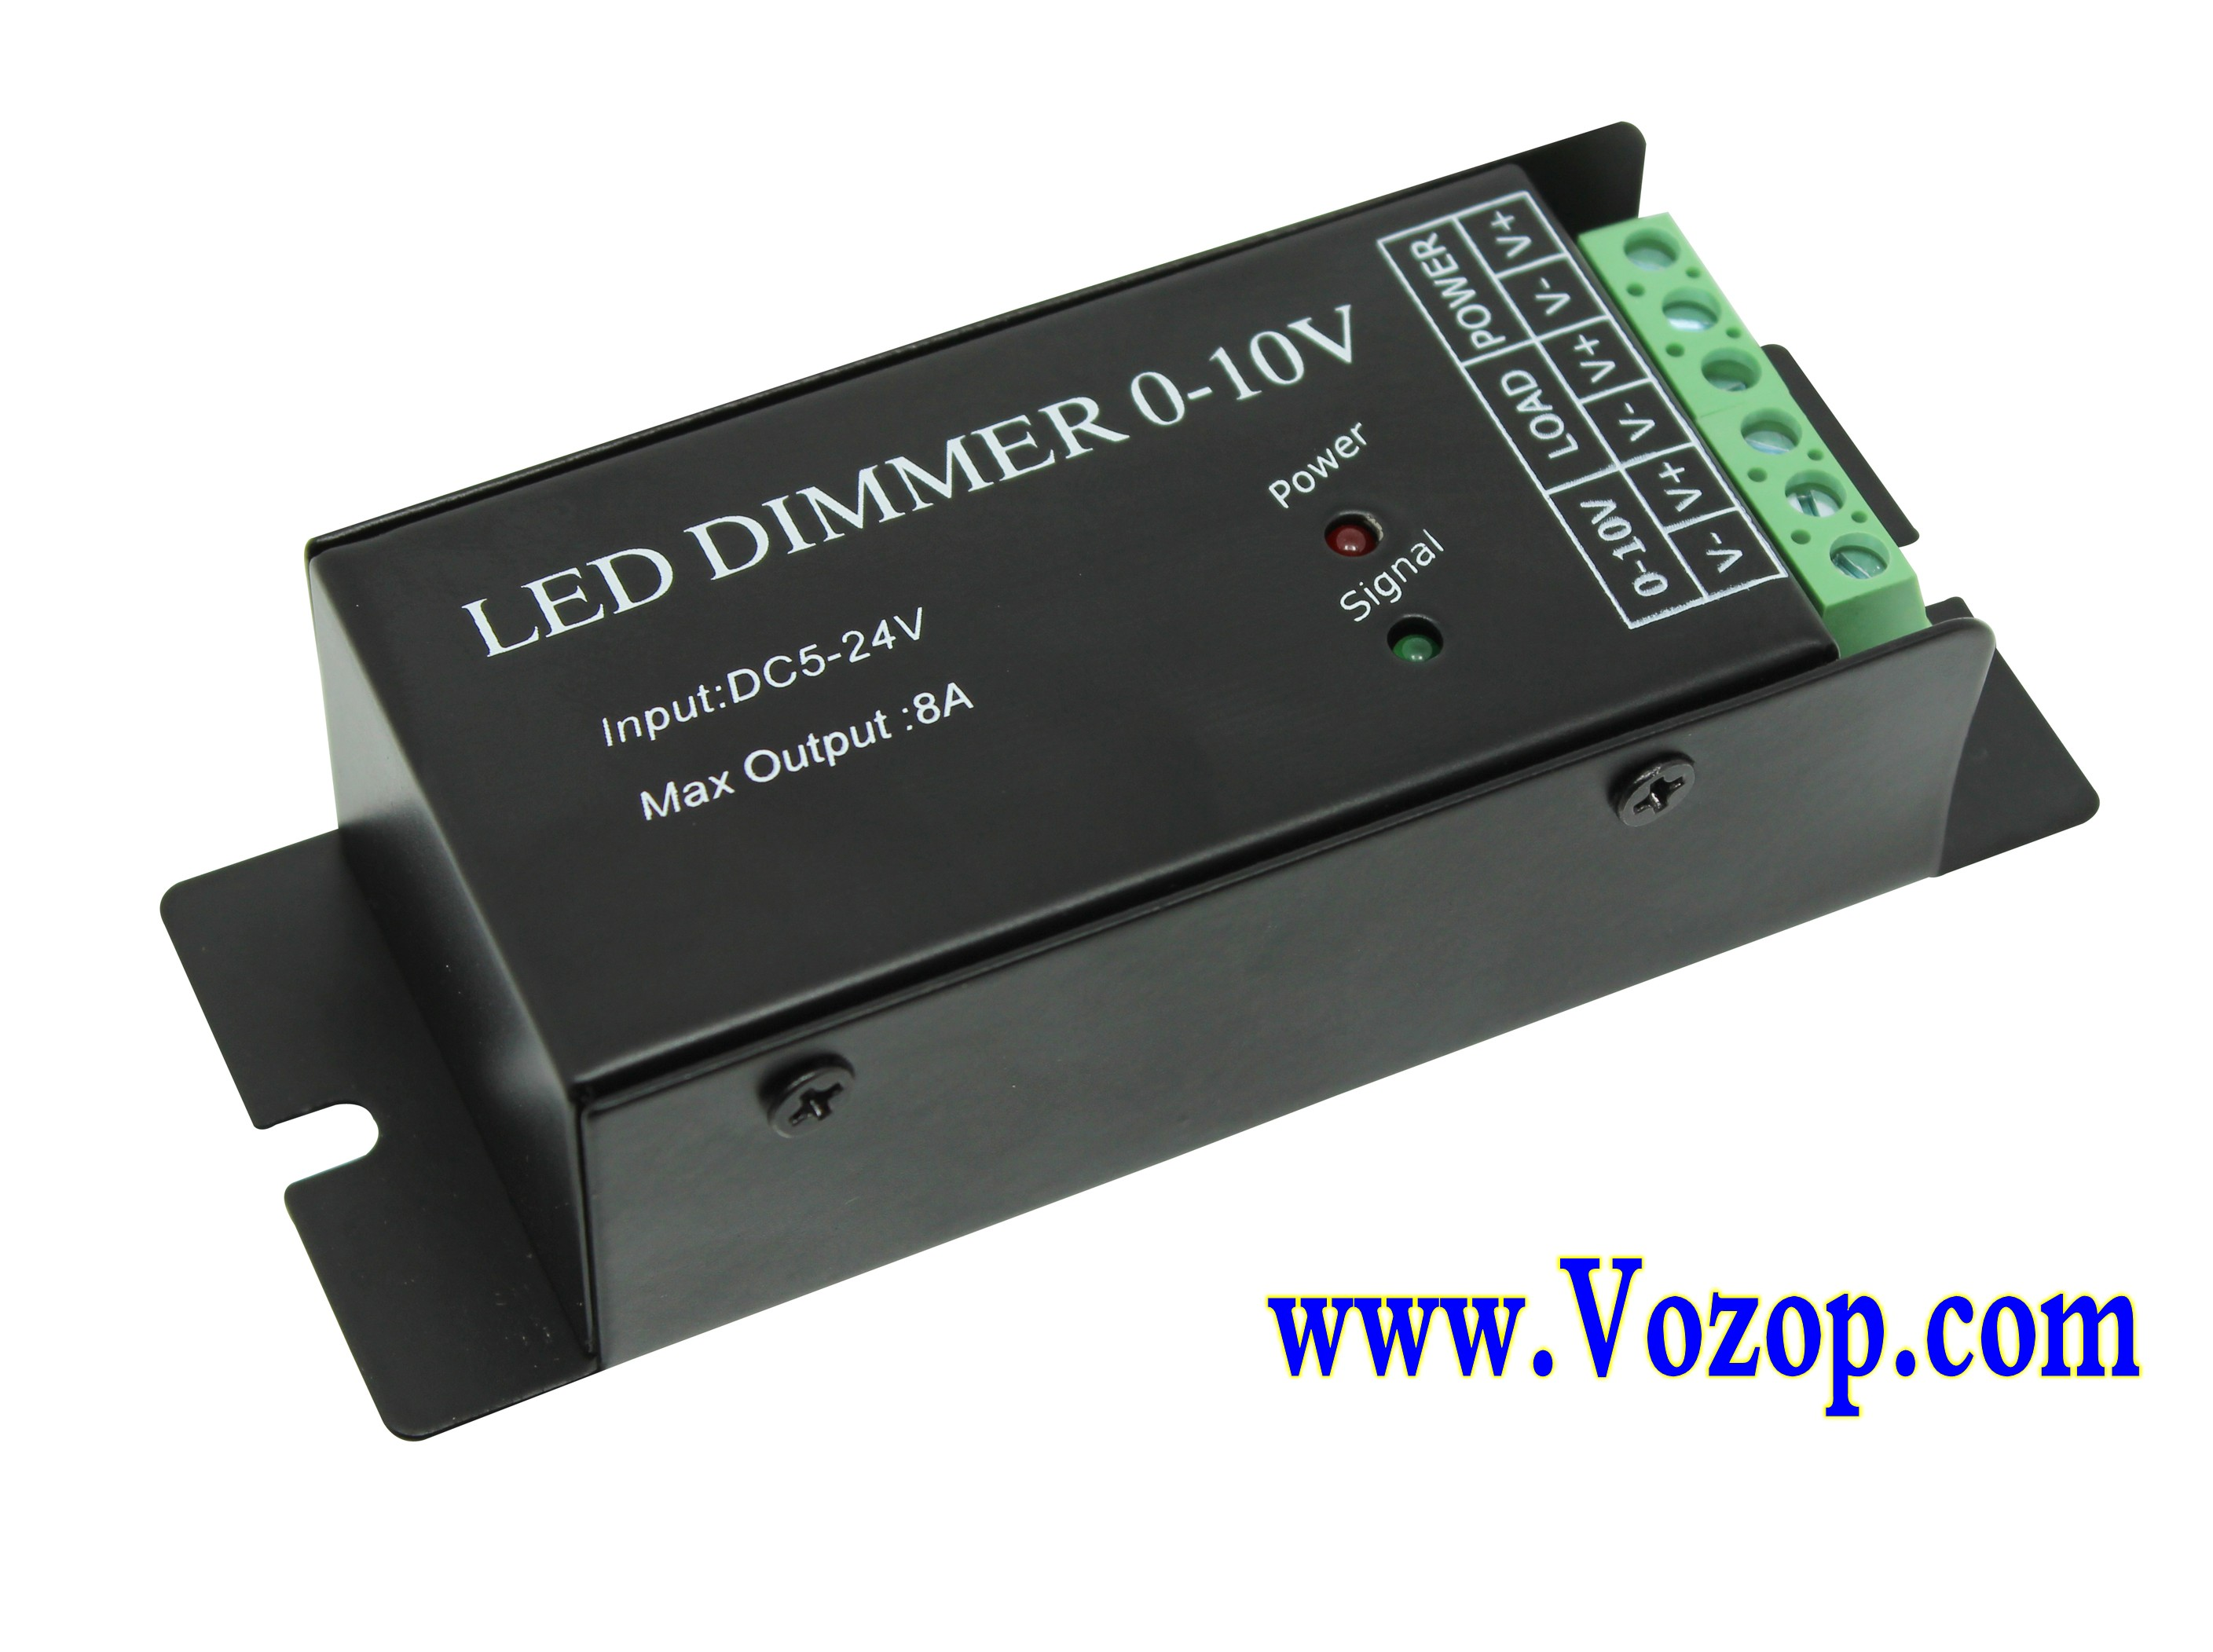 Etc Dimmer manual